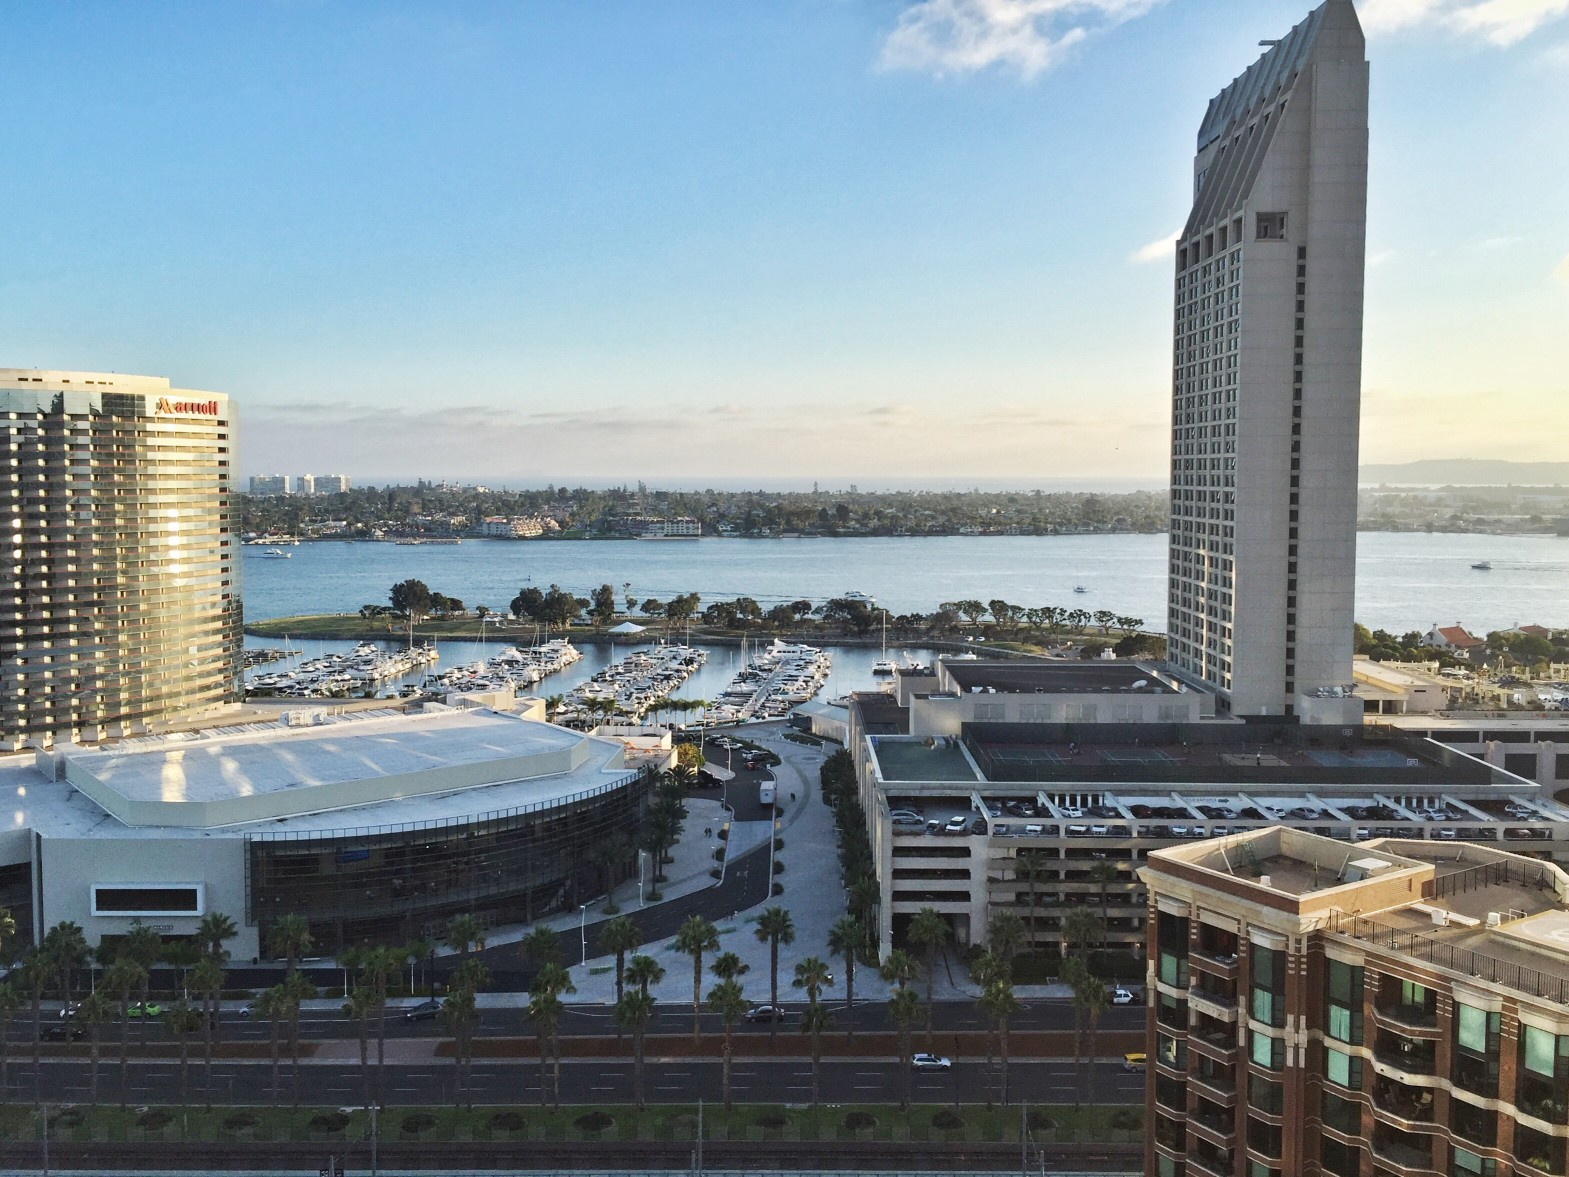 beautiful-san-diego-skyline-at-the-harbor-a-little-architecture-a-little-water-a-little-marina-a_t20_ZxVNda